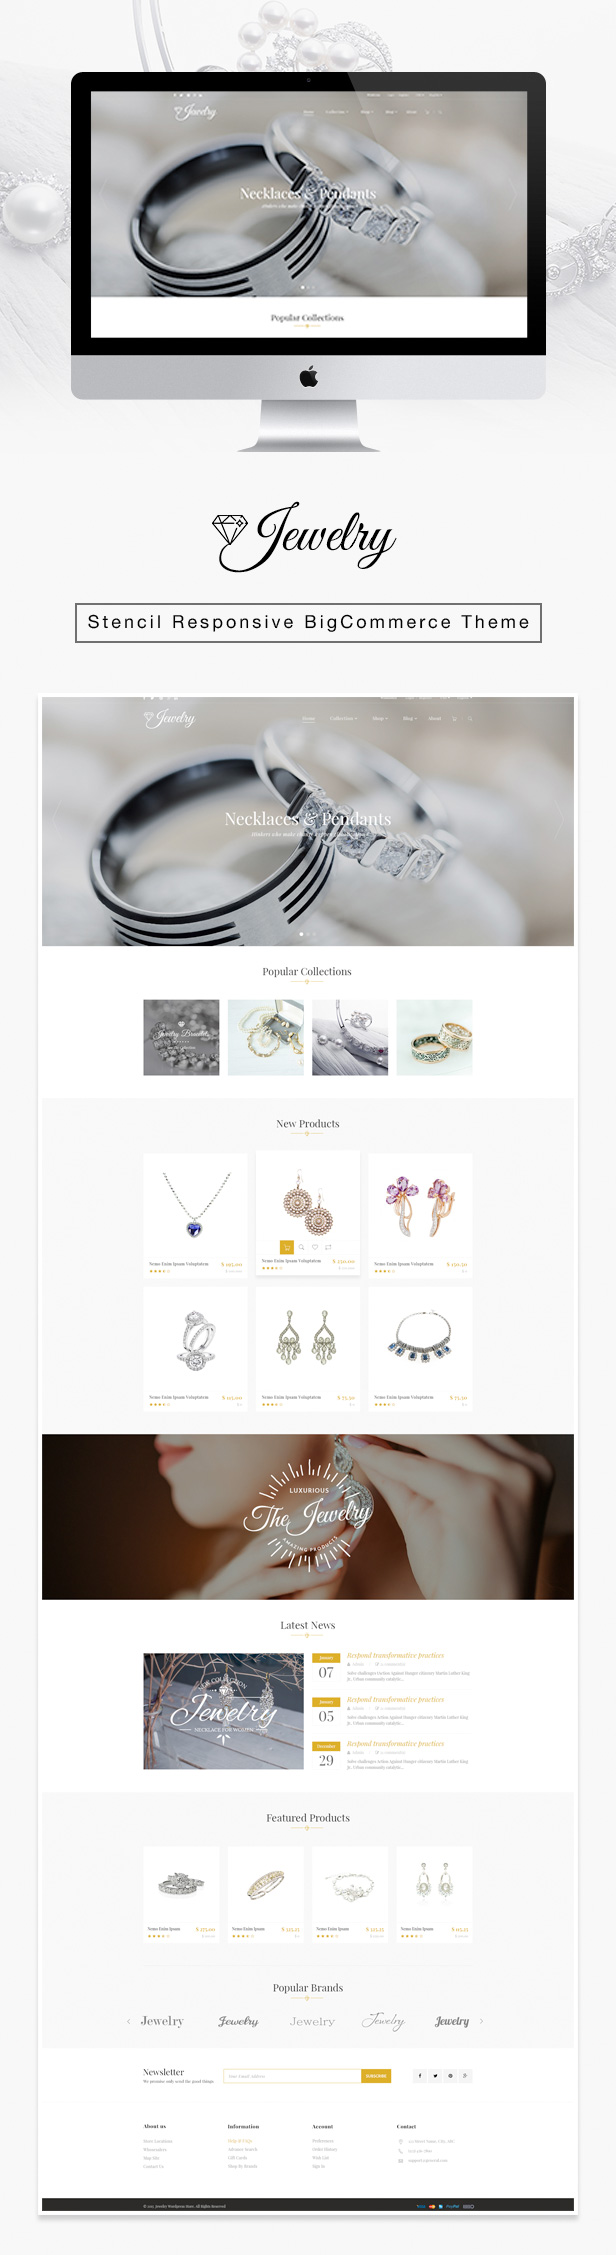 Jewelry Responsive Parallax BigCommerce Theme – Stencil Framework (BigCommerce)